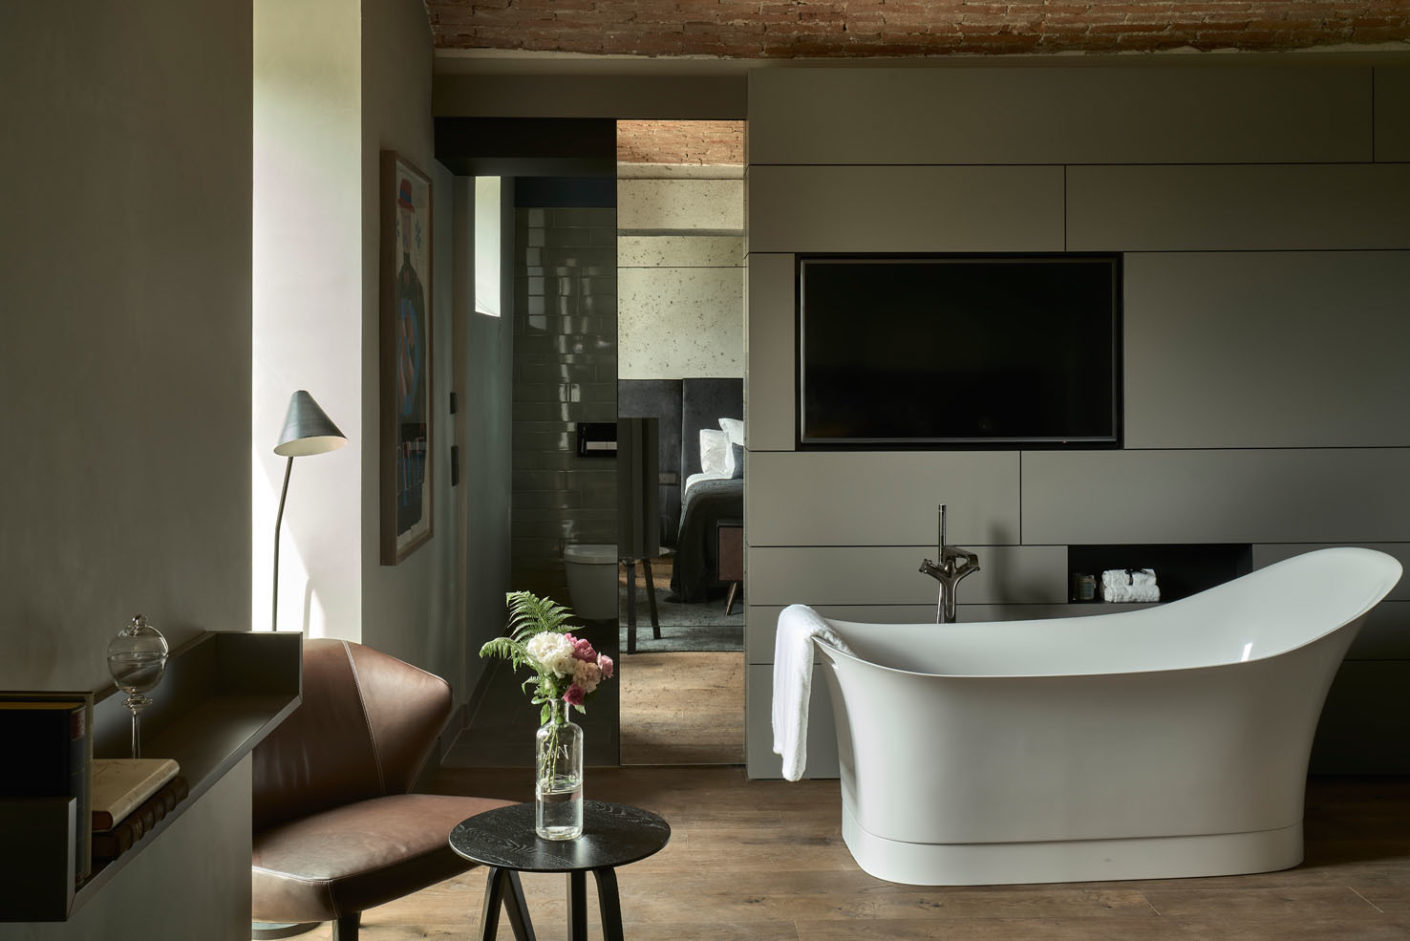 Optimal duo: The free-standing bathtub from the Axor-Urquiola collection and the floor-based bath tub mixer, Axor Citterio E.